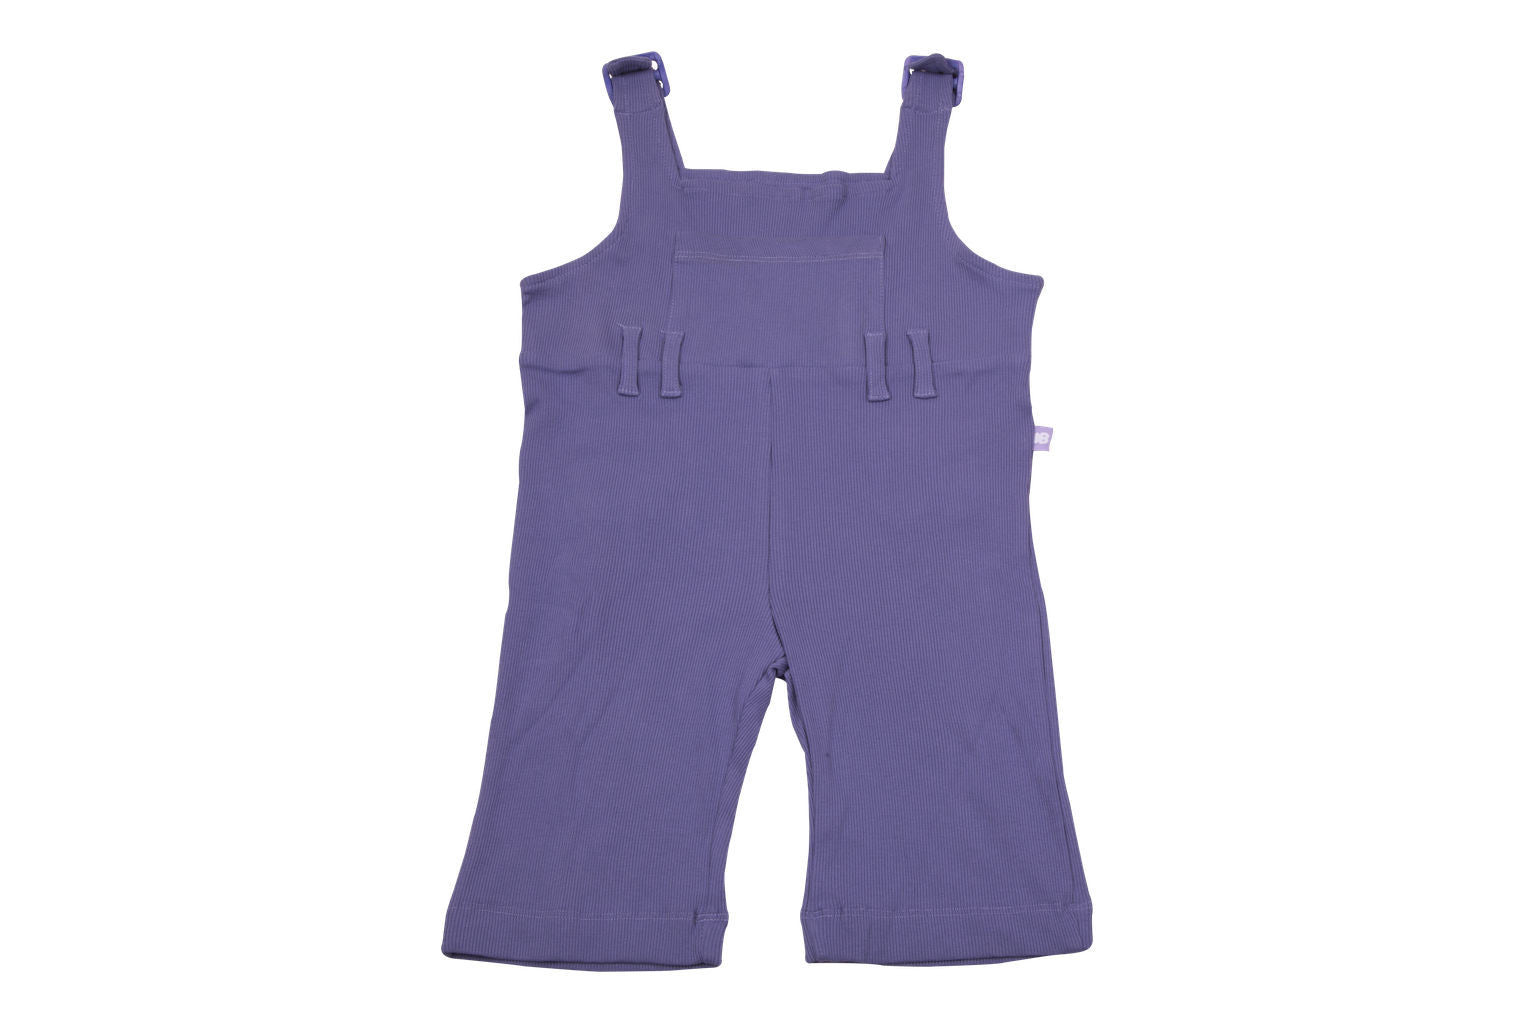 Toddler Pant in Organic Cotton - HUGABUG